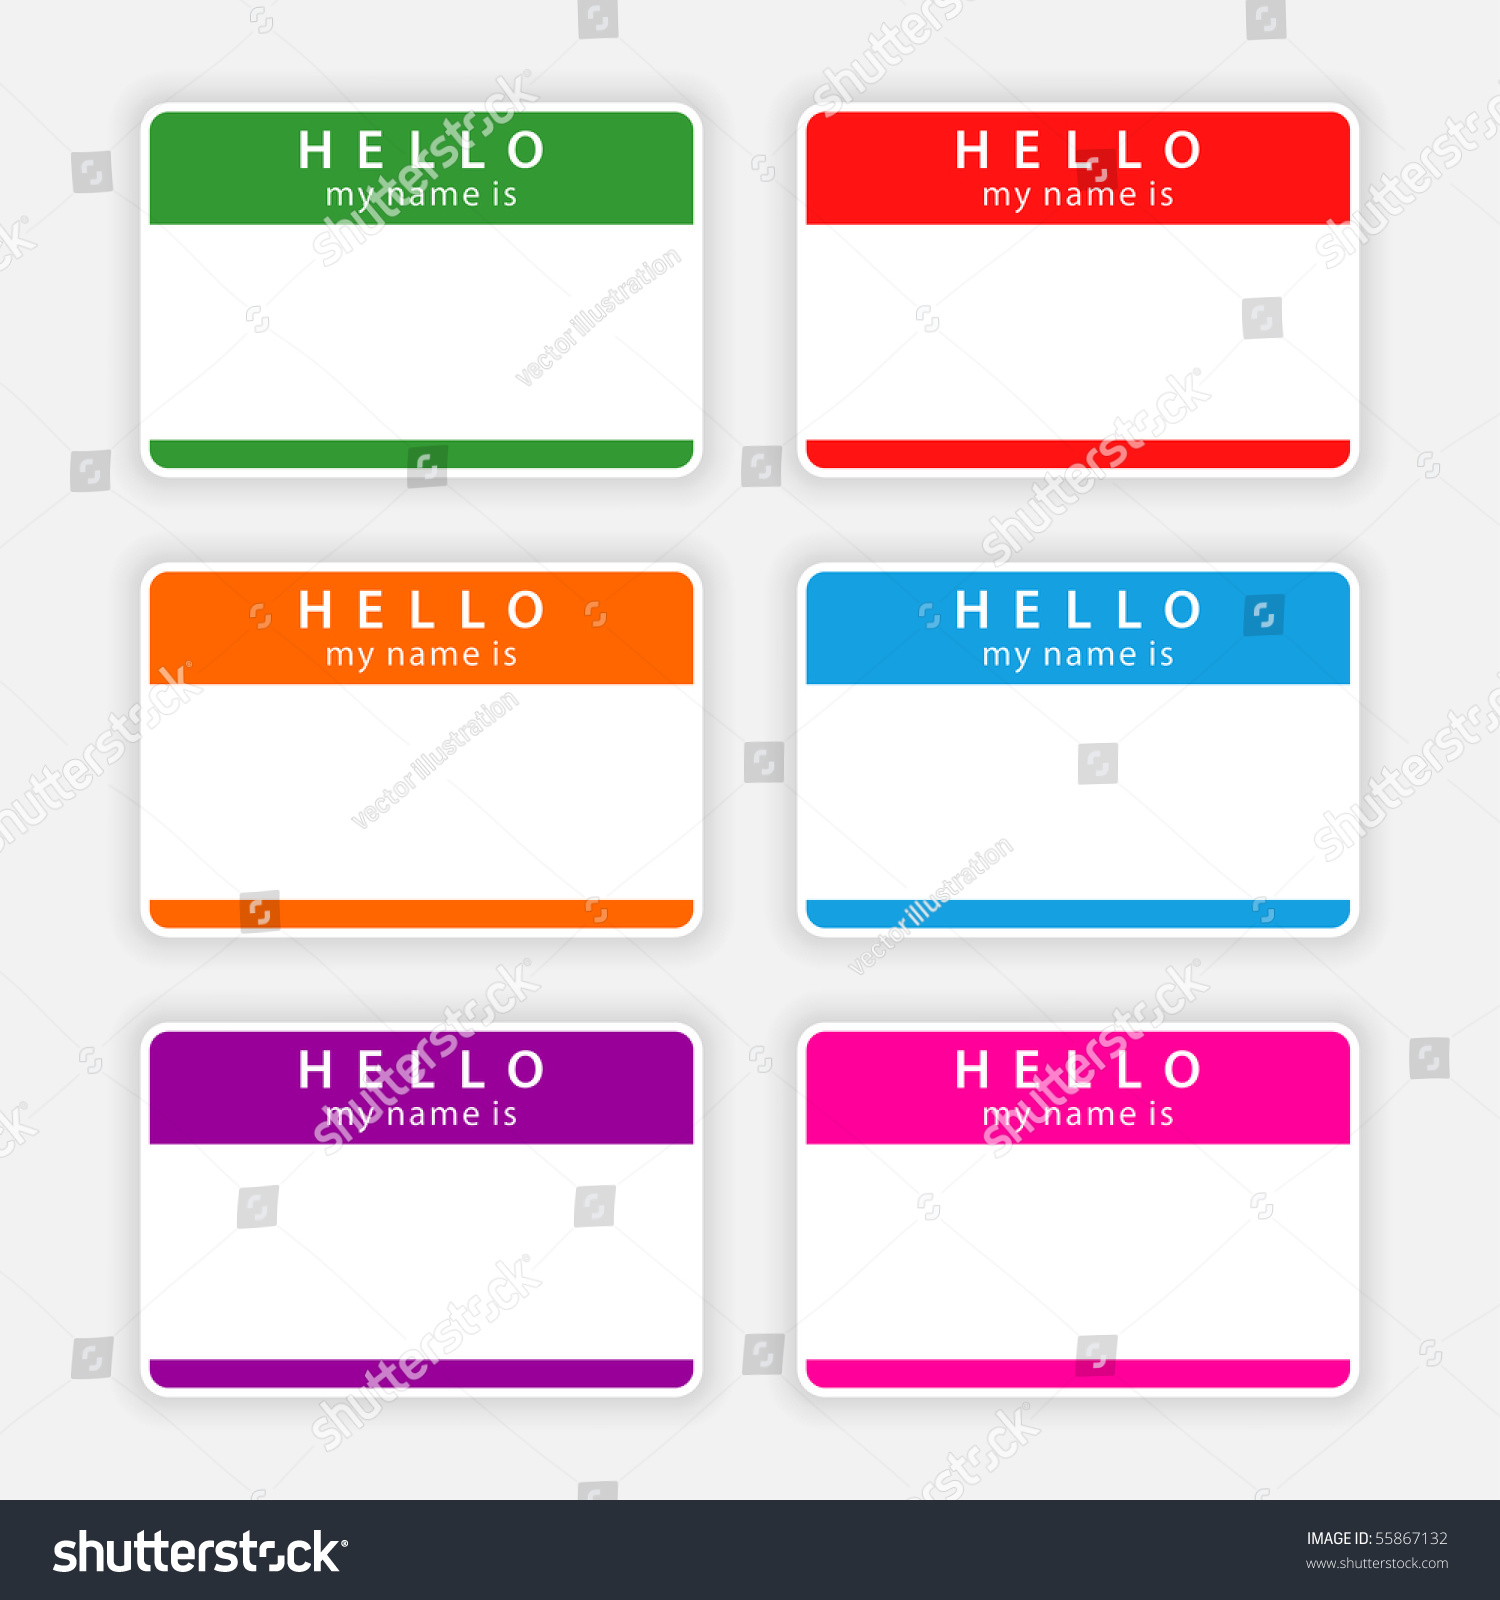 H tag background image - Badge Name Tag Hello My Name Is Colorful Blank Label With Shadow On Gray Background